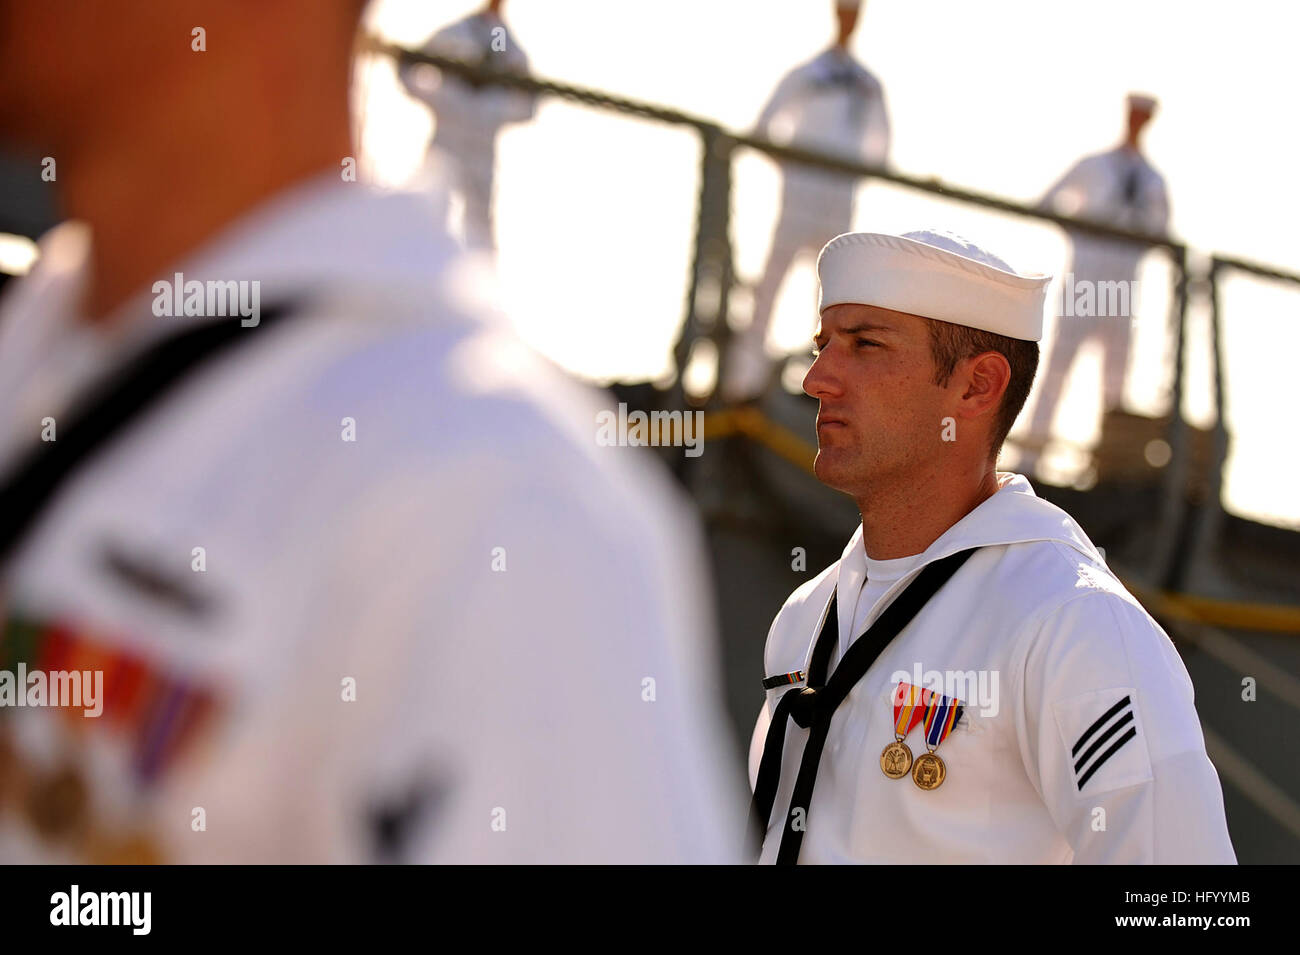 110729-N-YR391-004 MAYPORT, Fla. (July 29, 2011) Seaman Cody Monroe, assigned to the guided-missile frigate USS - Stock Image